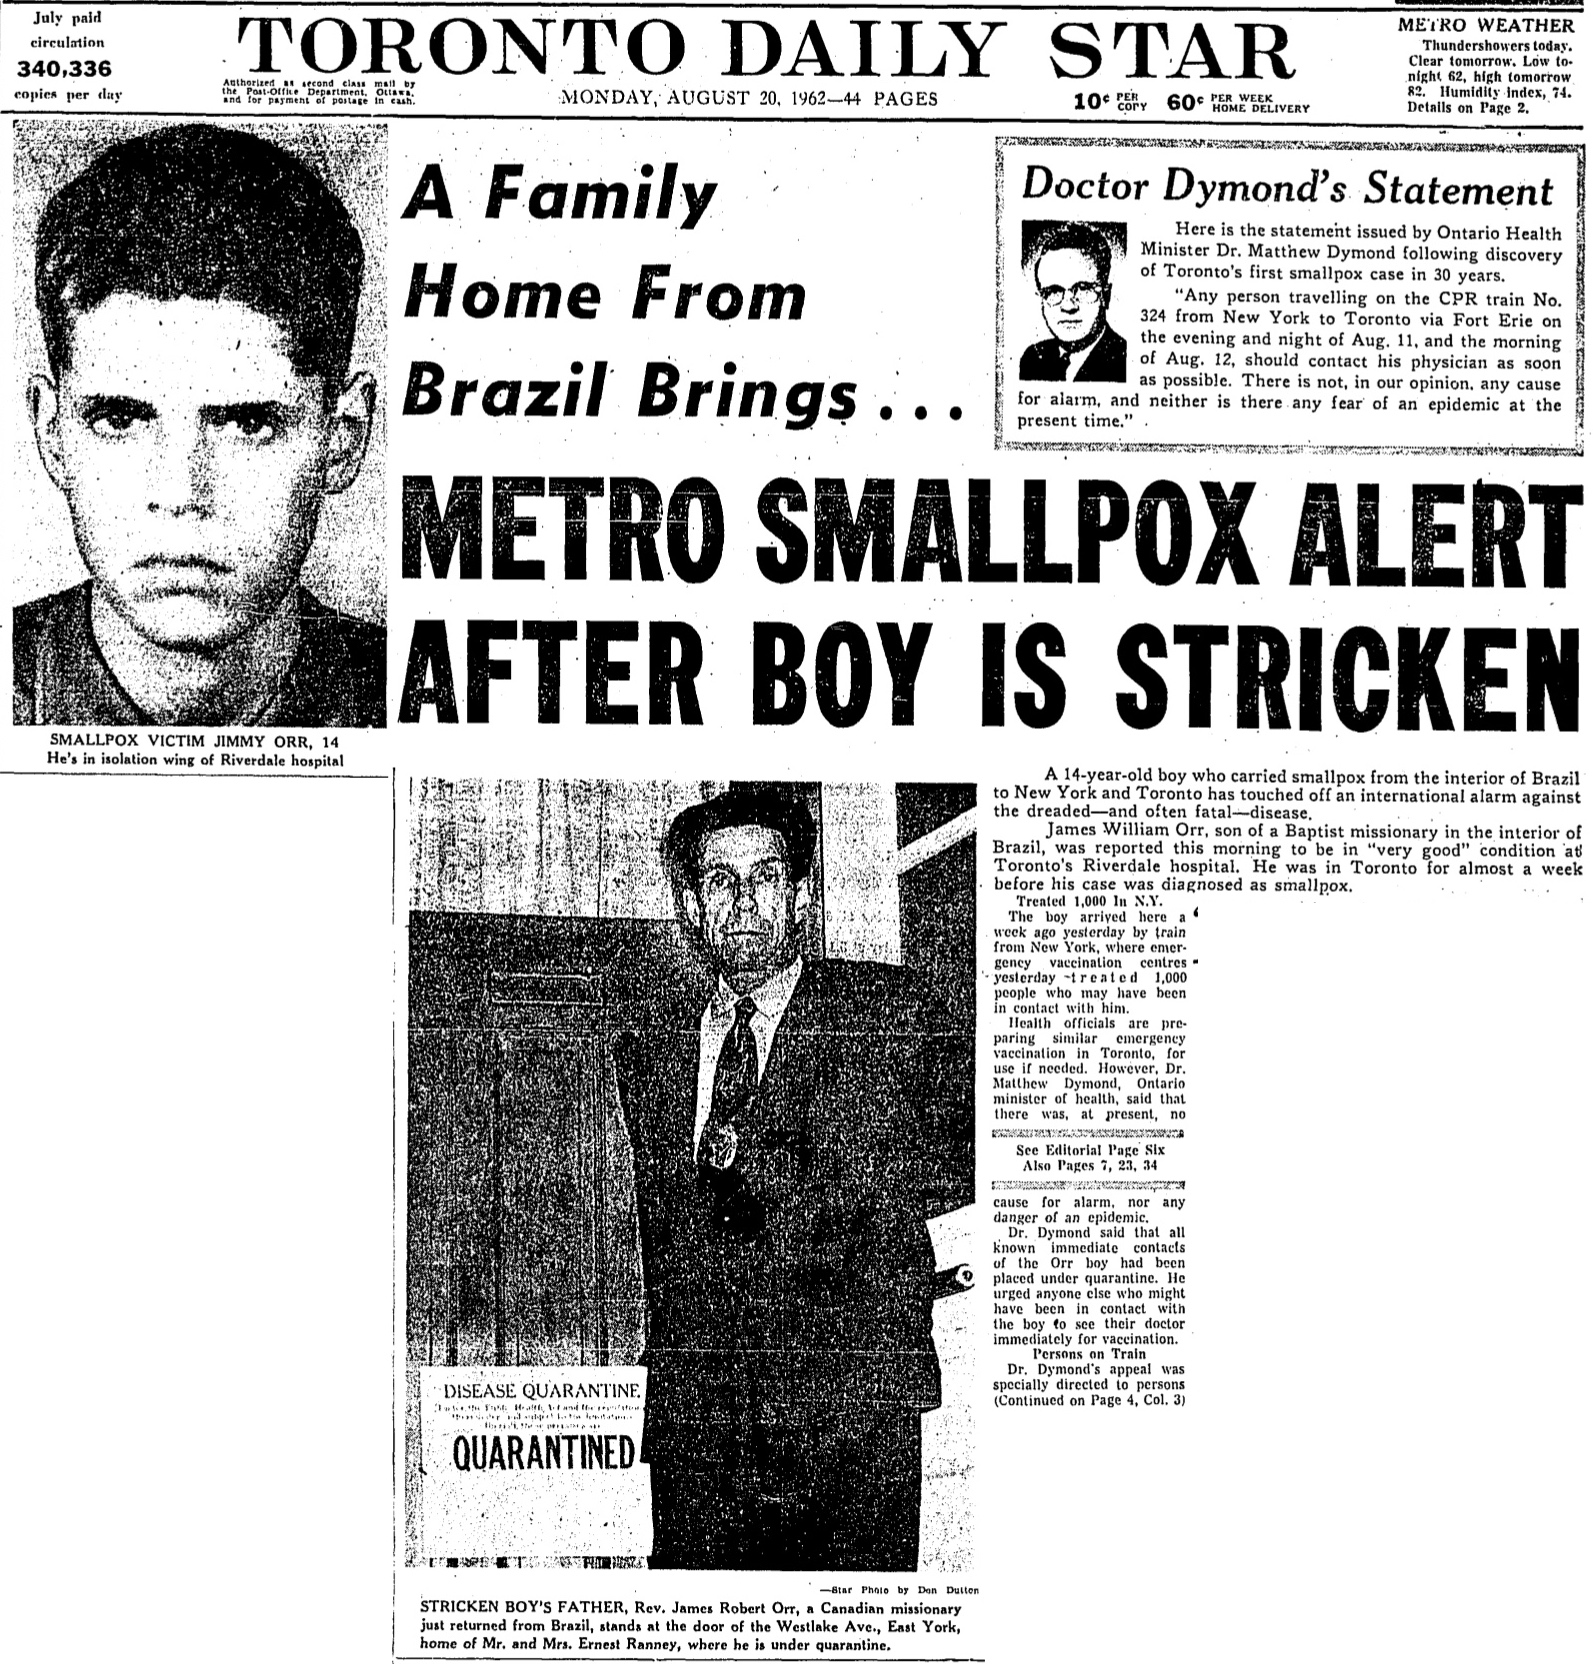 The confirmation of Jimmie Orr's smallpox case sparked considerable press attention in the August 20, 1962 edition of the Toronto Star.